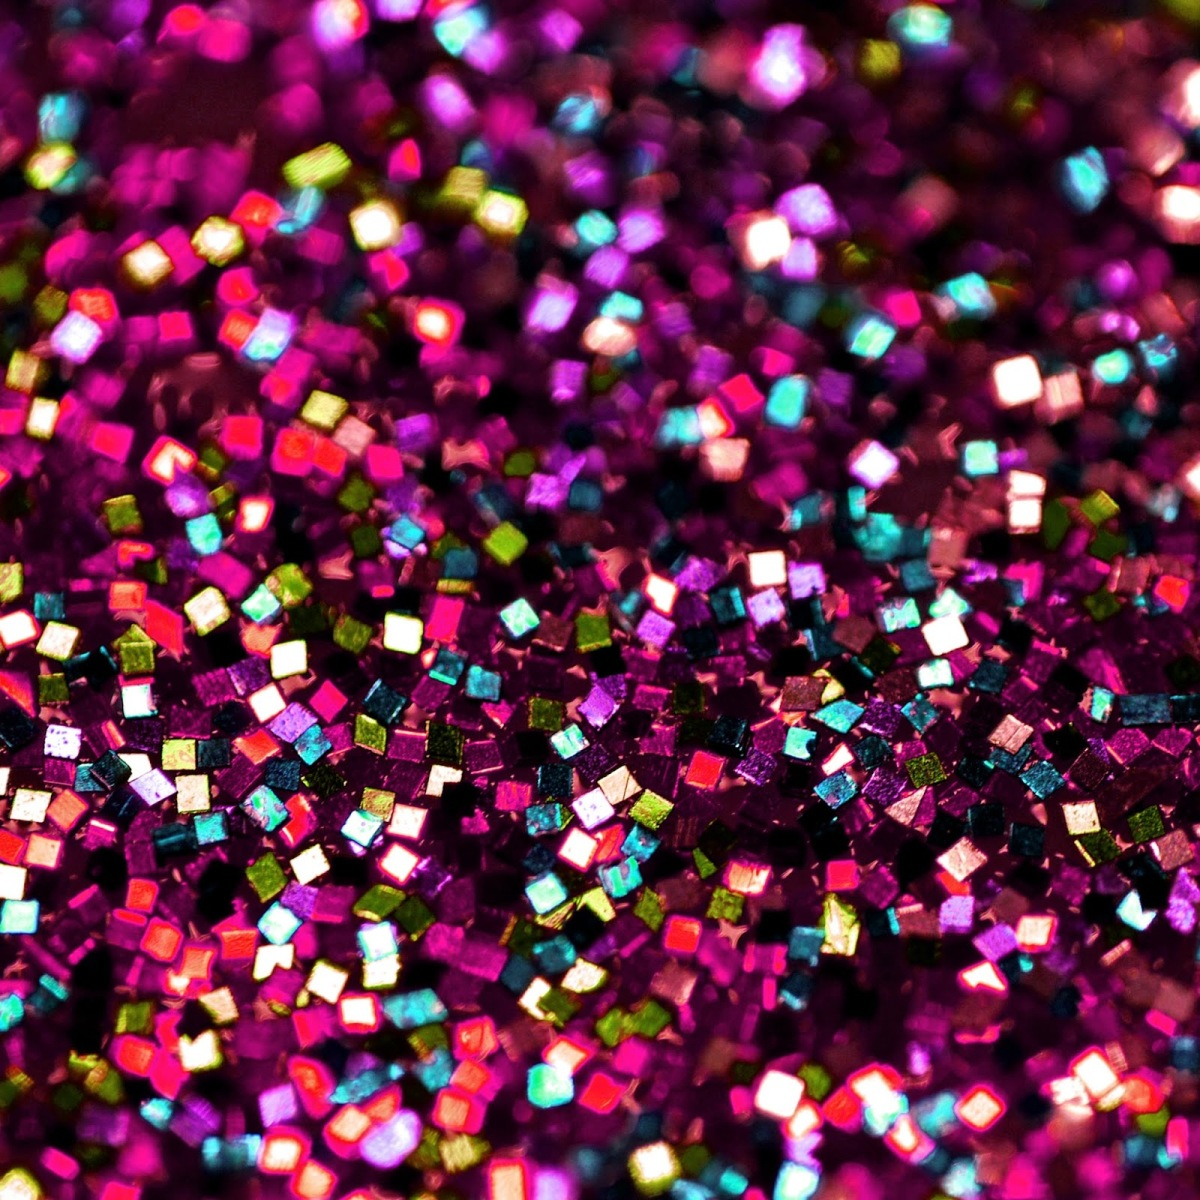 Roll it in glitter, make it look pretty!